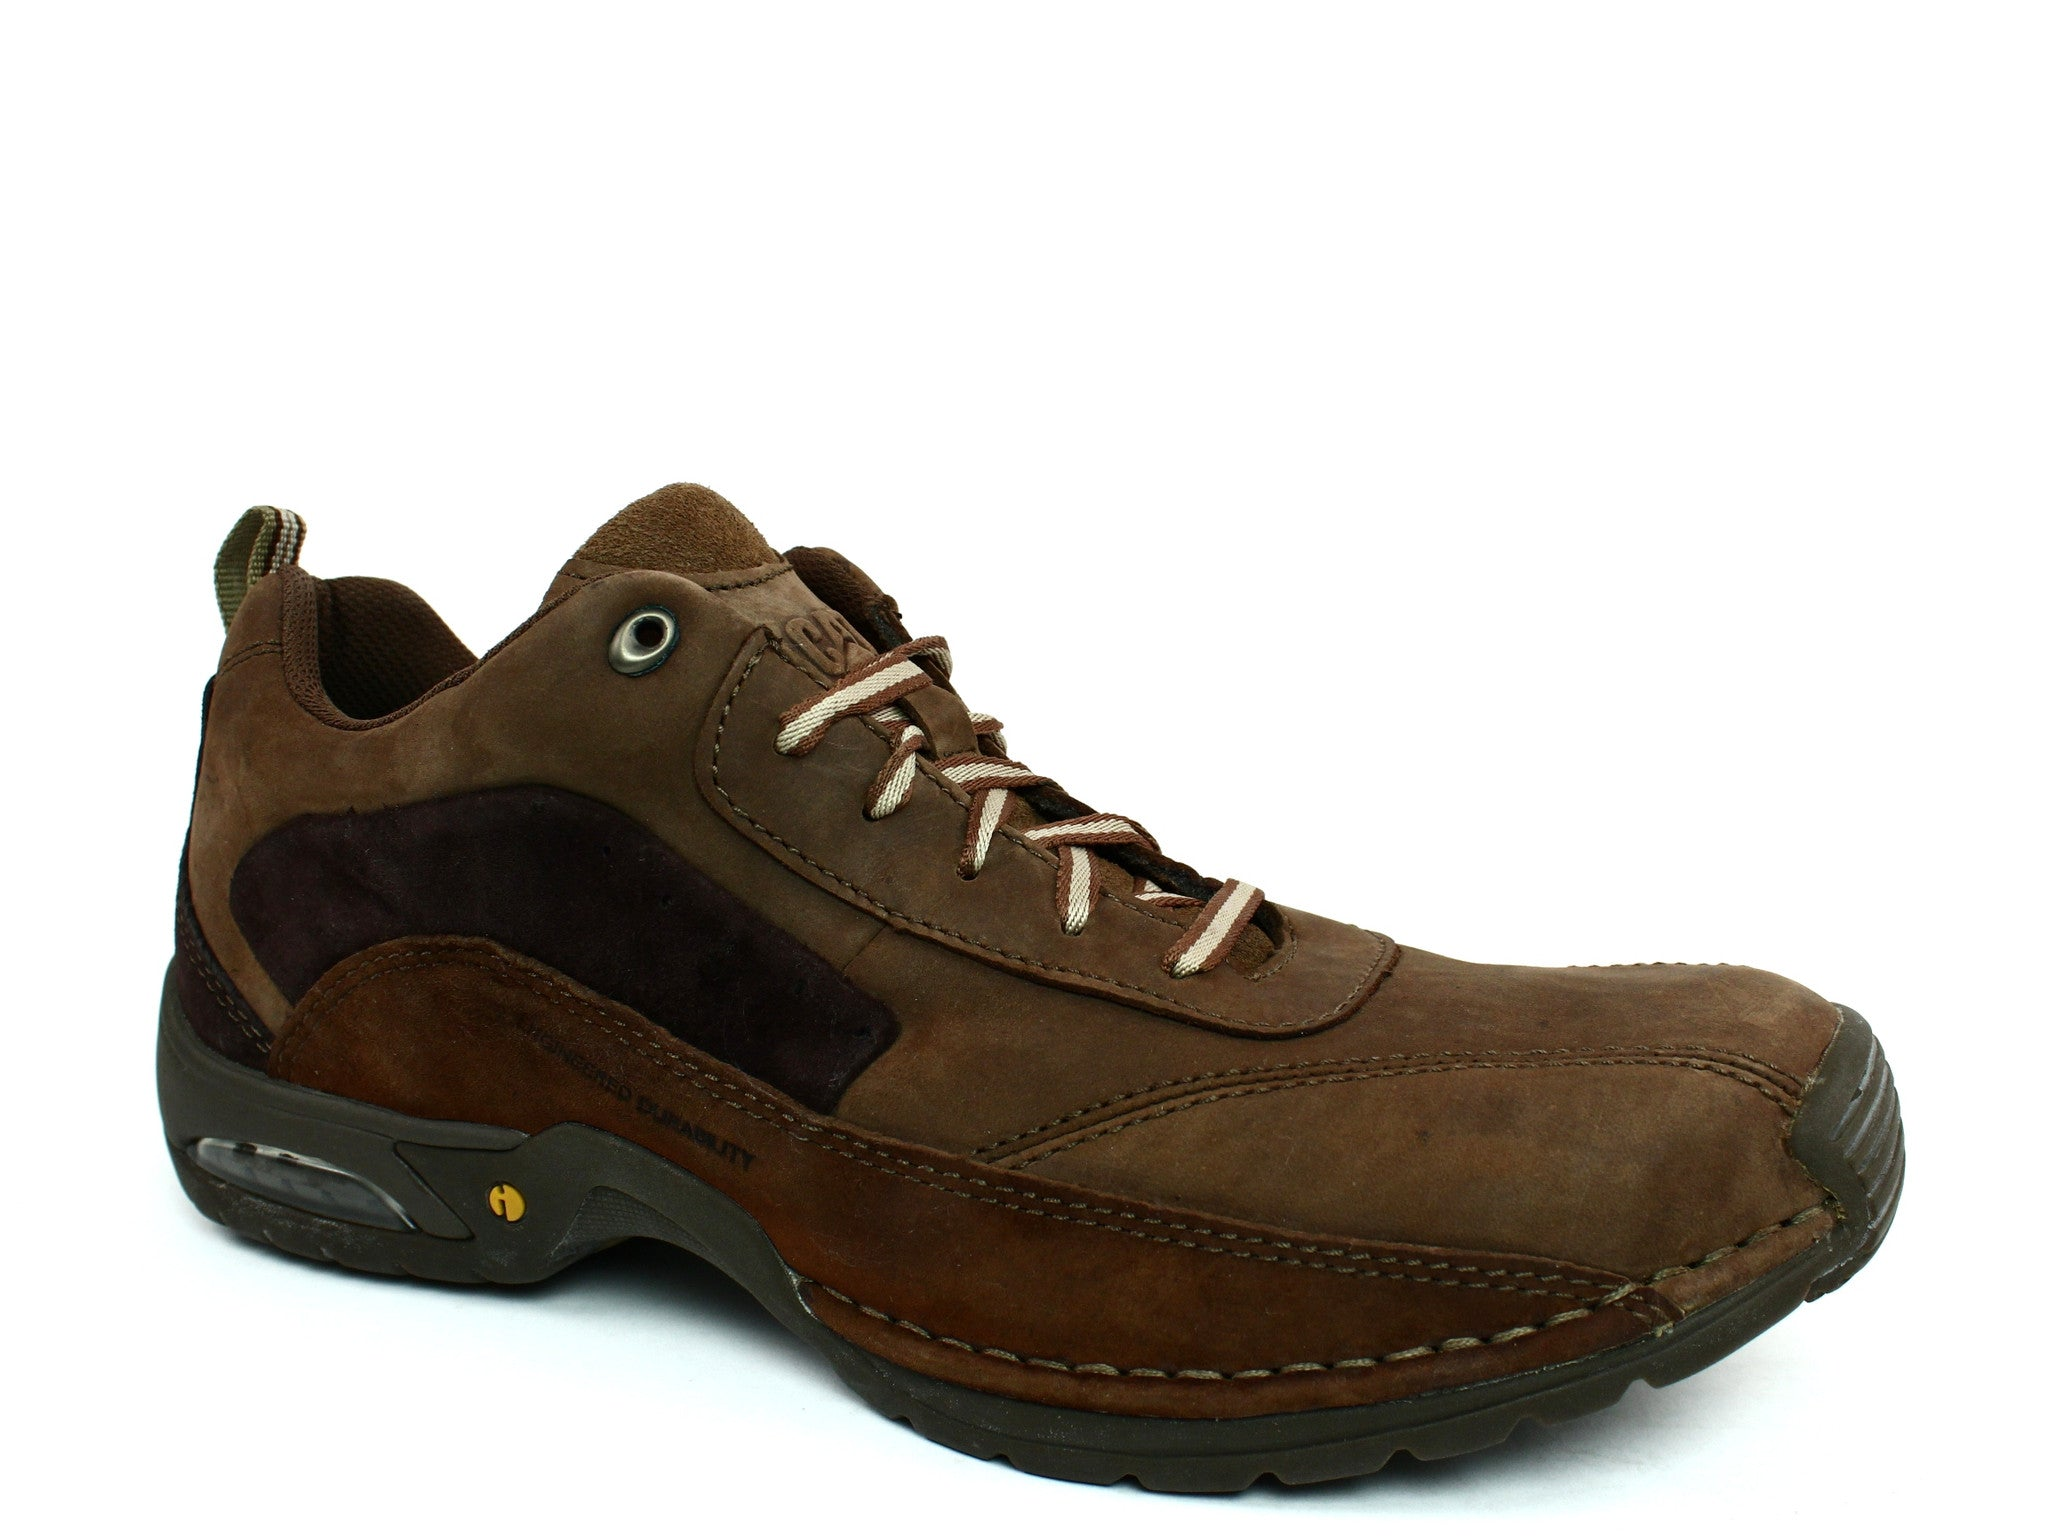 Caterpillar Trimix Oxford Work and Casual Men's Shoes